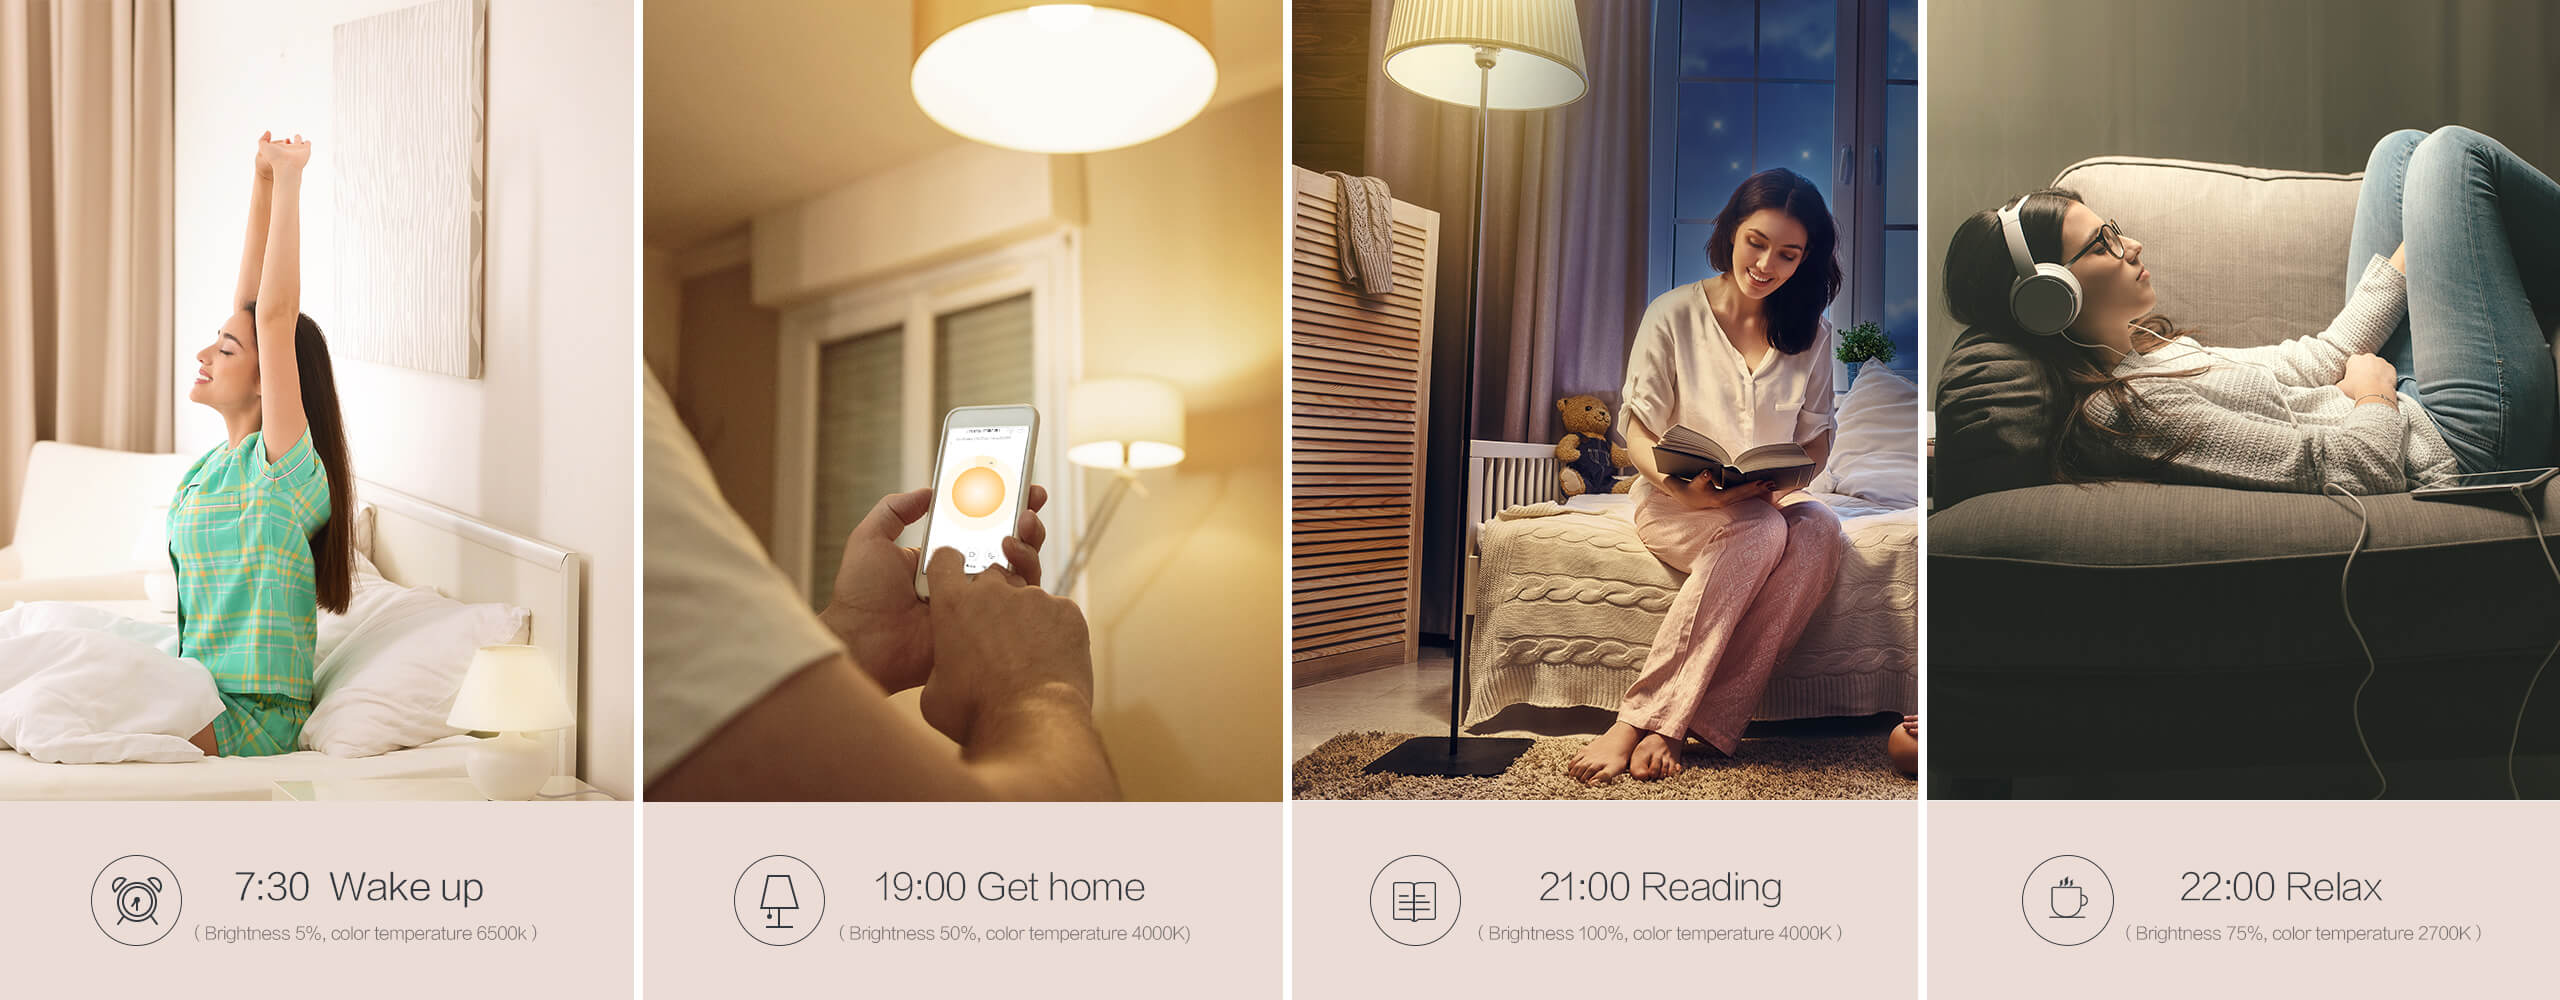 Schedule Aqara light bulb's brightness and color temp at different time.